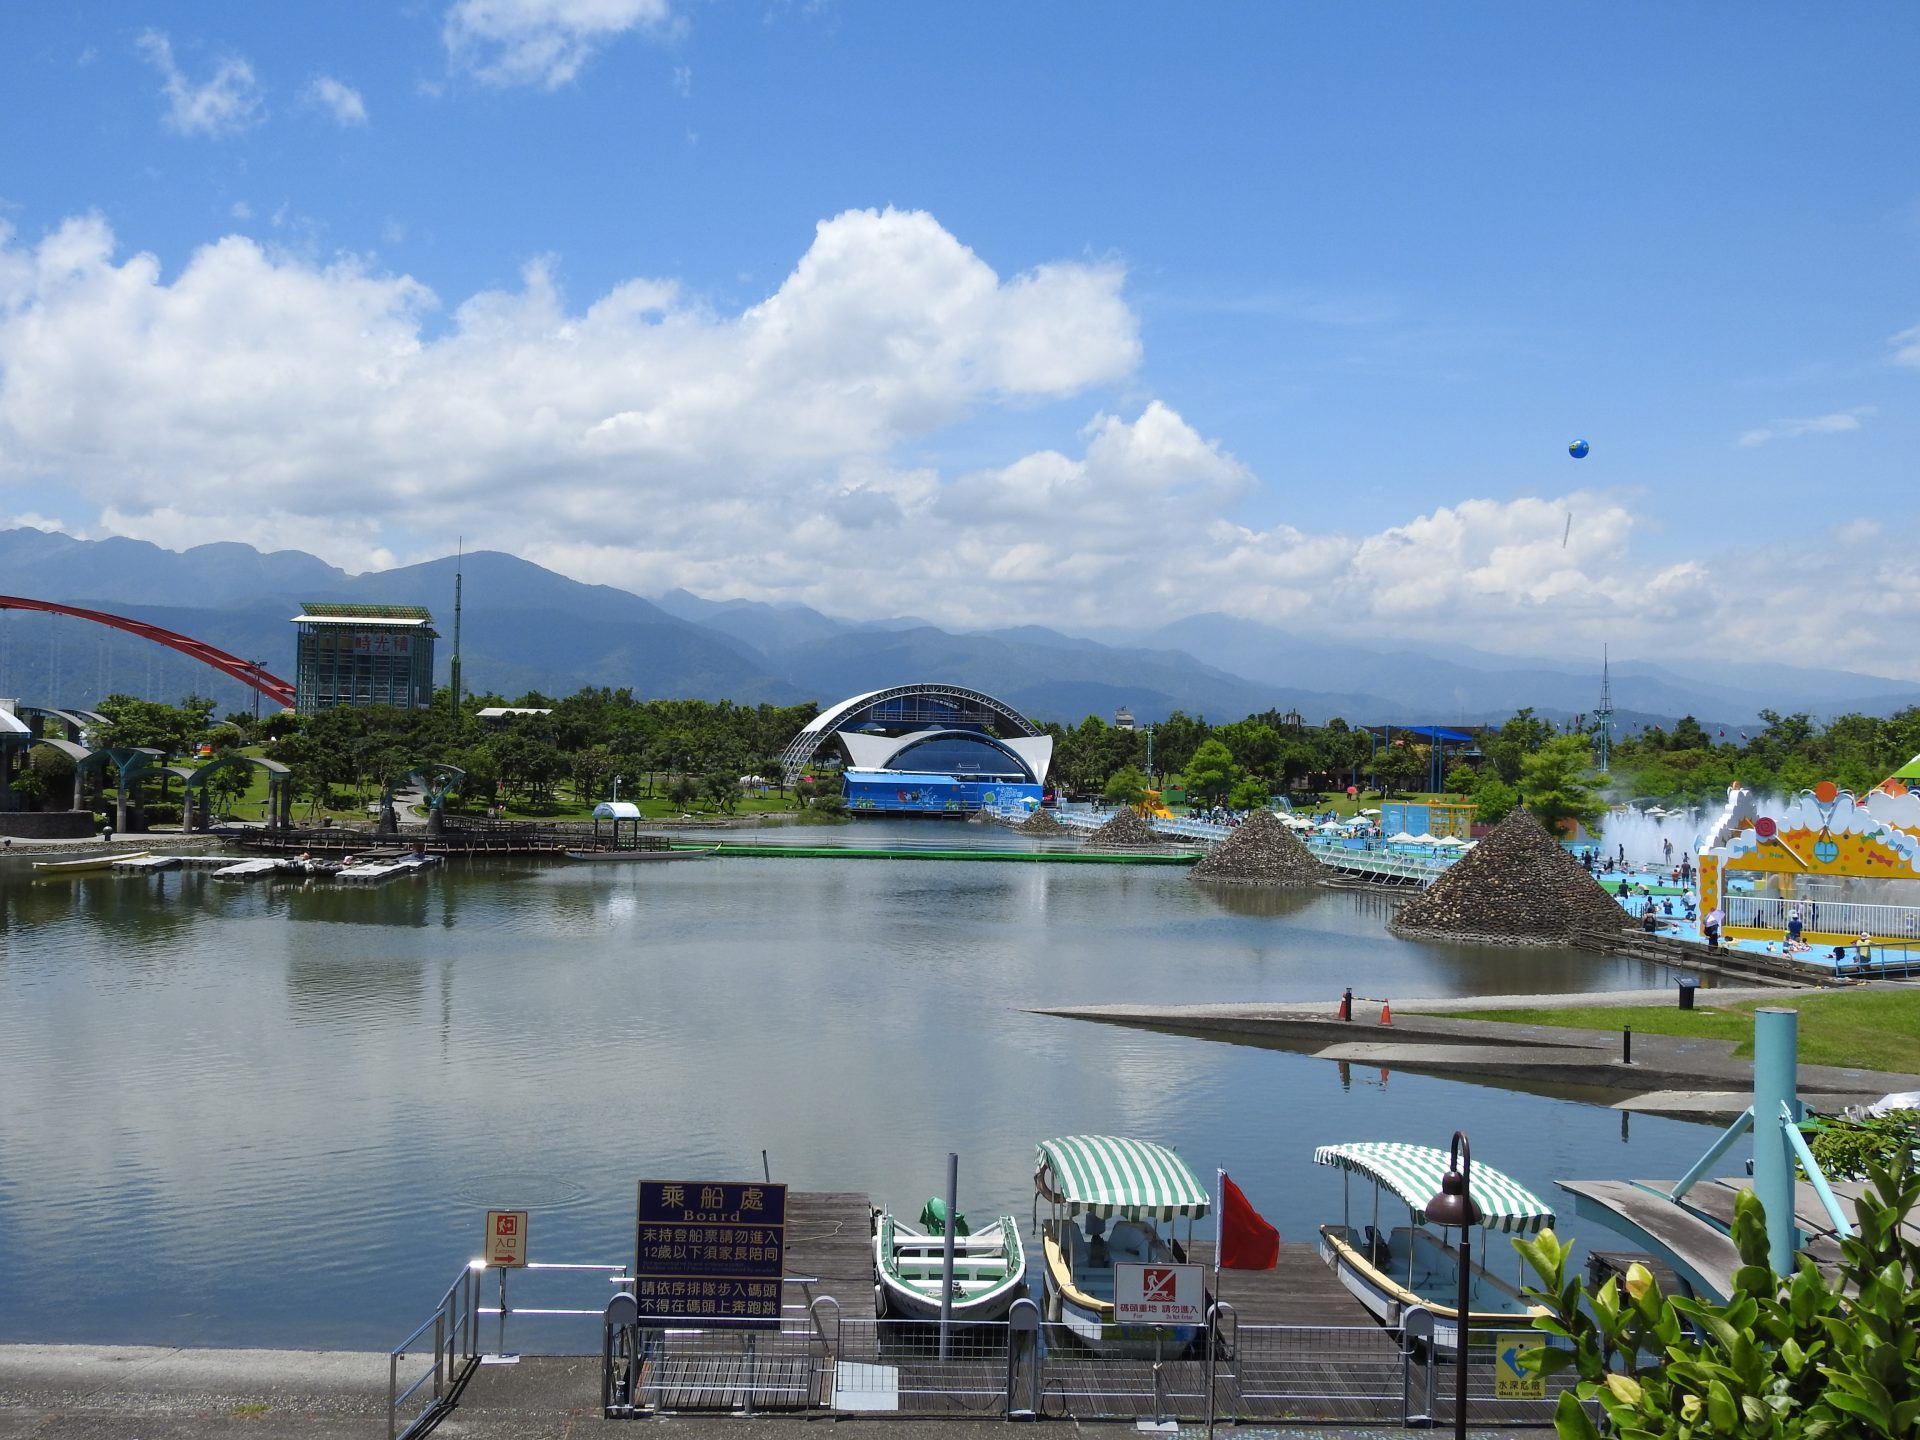 The overview of the water playgrounds at the Yilan International Children's Folklore and Folkgame Festival 2017 (Image: Billy Shyu/ Vision Times)